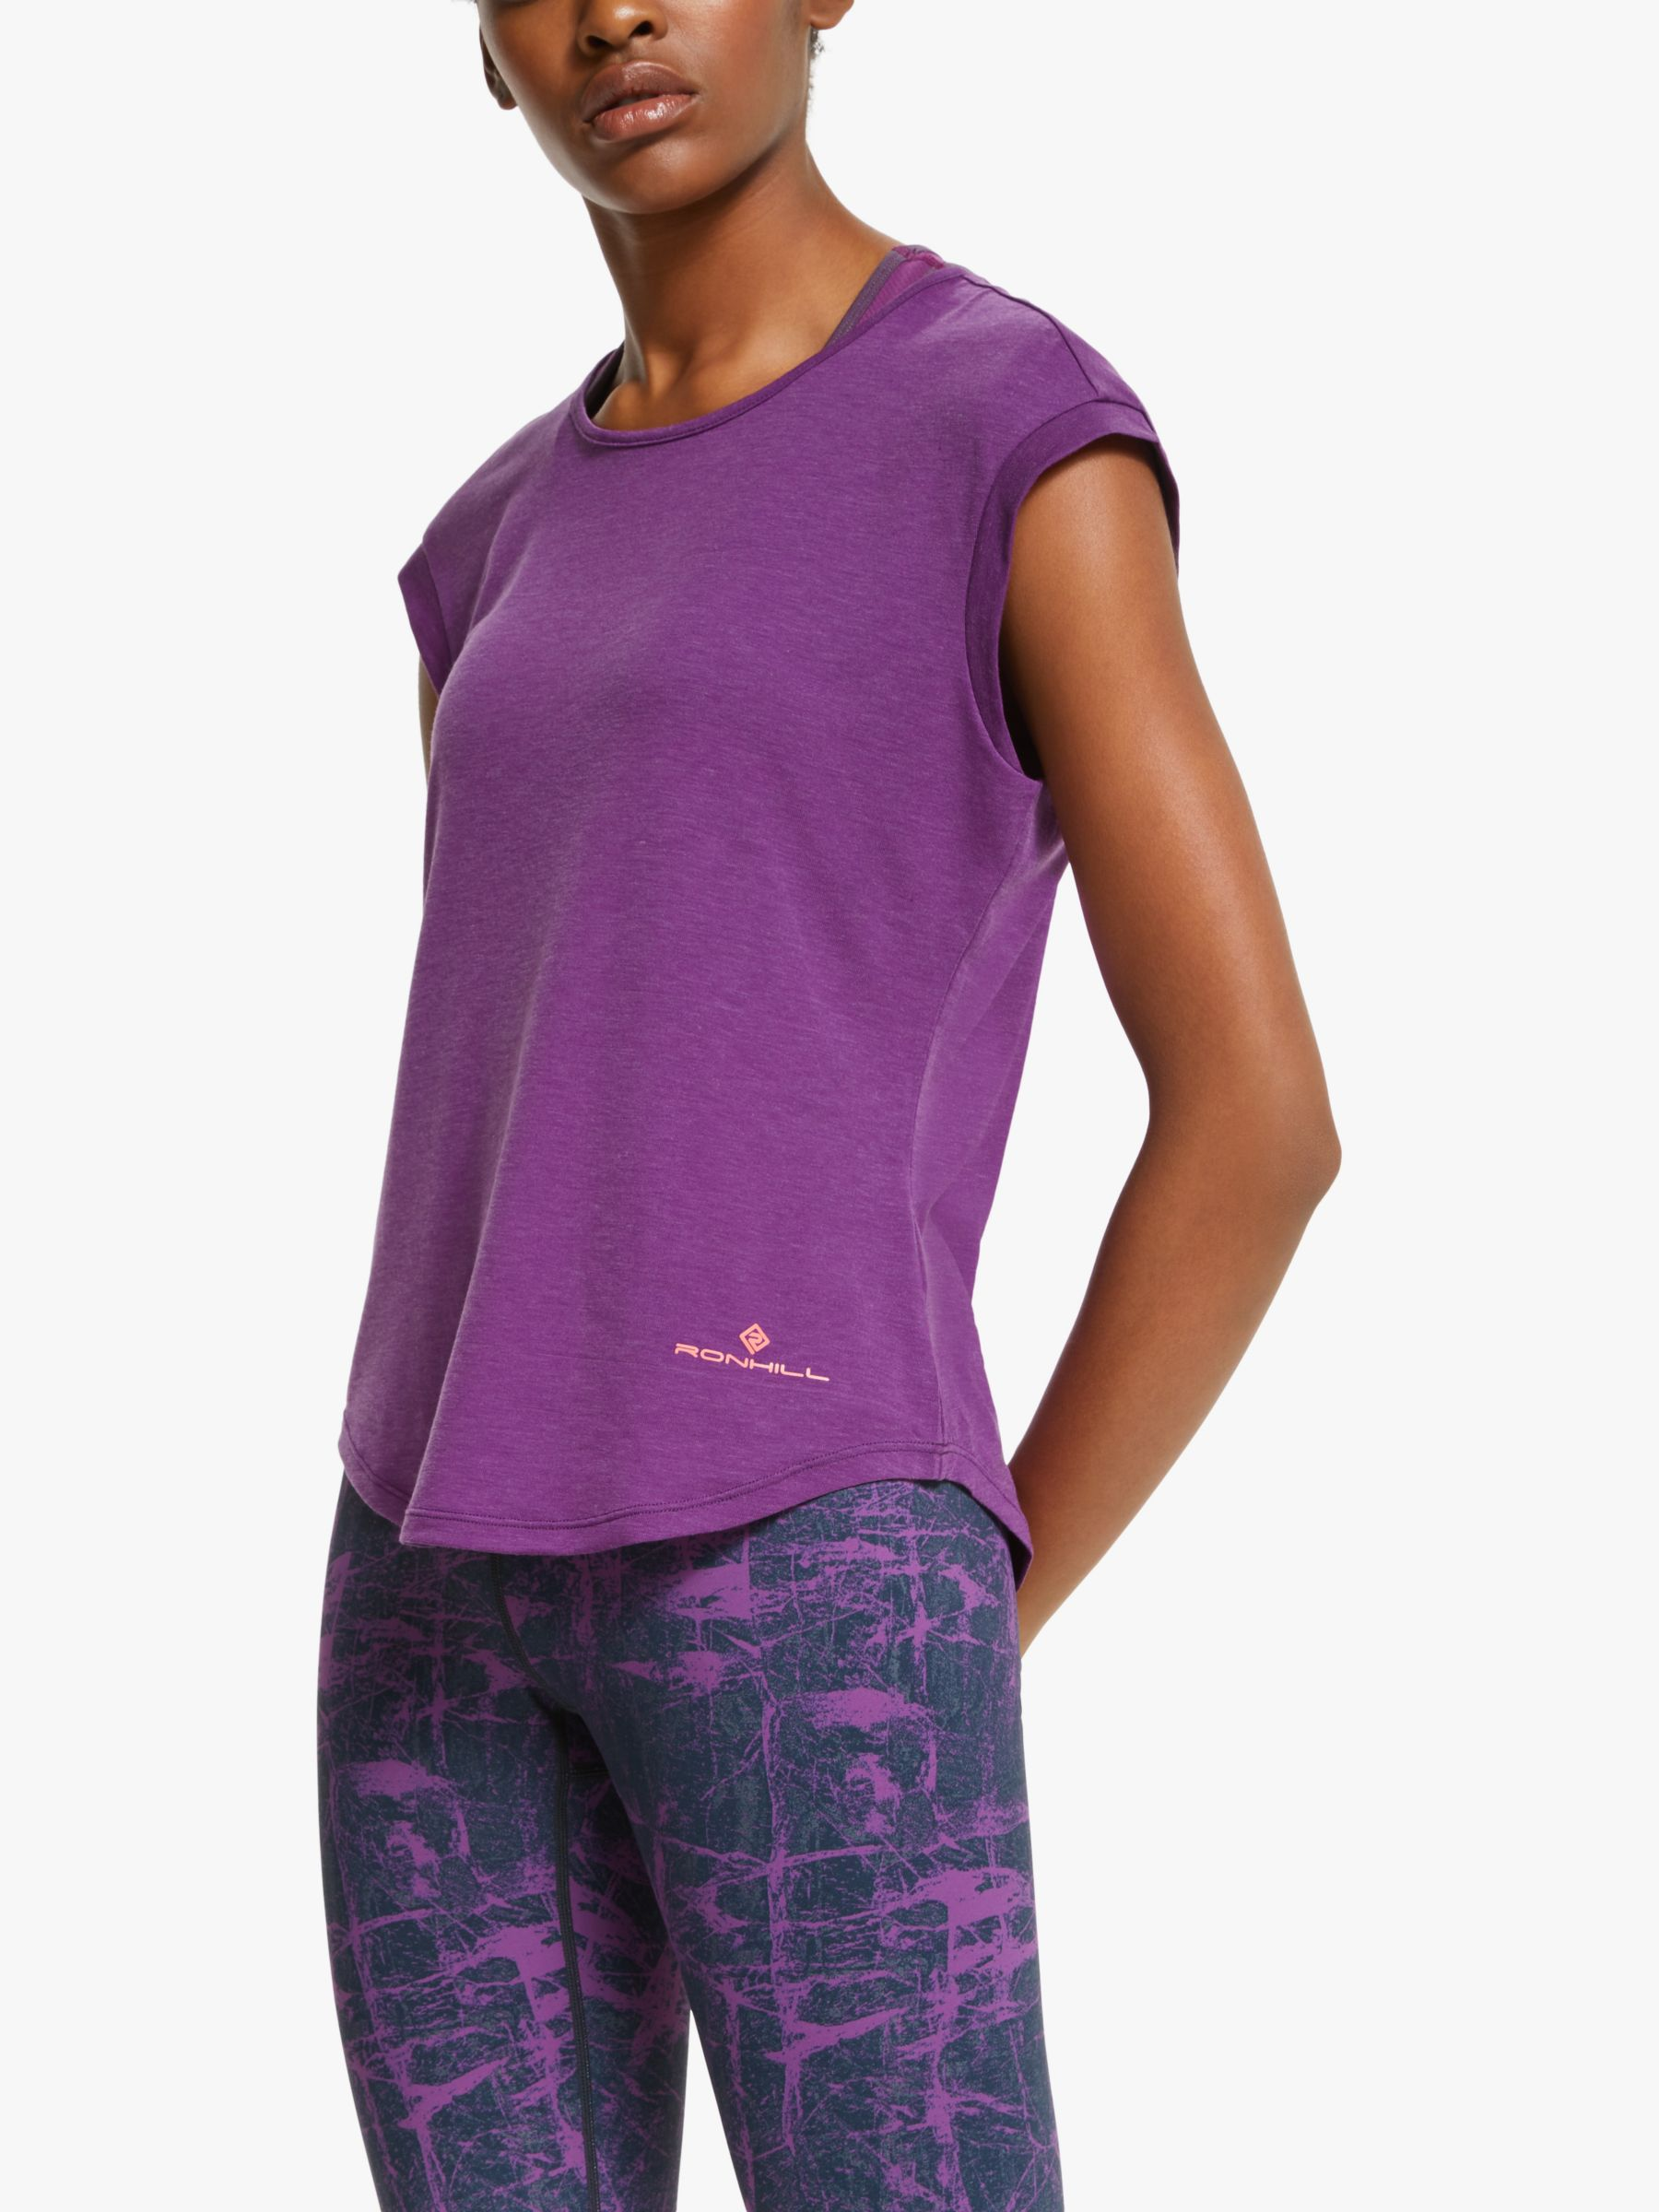 Ronhill Ronhill Momentum Tencel Short Sleeve Running Top